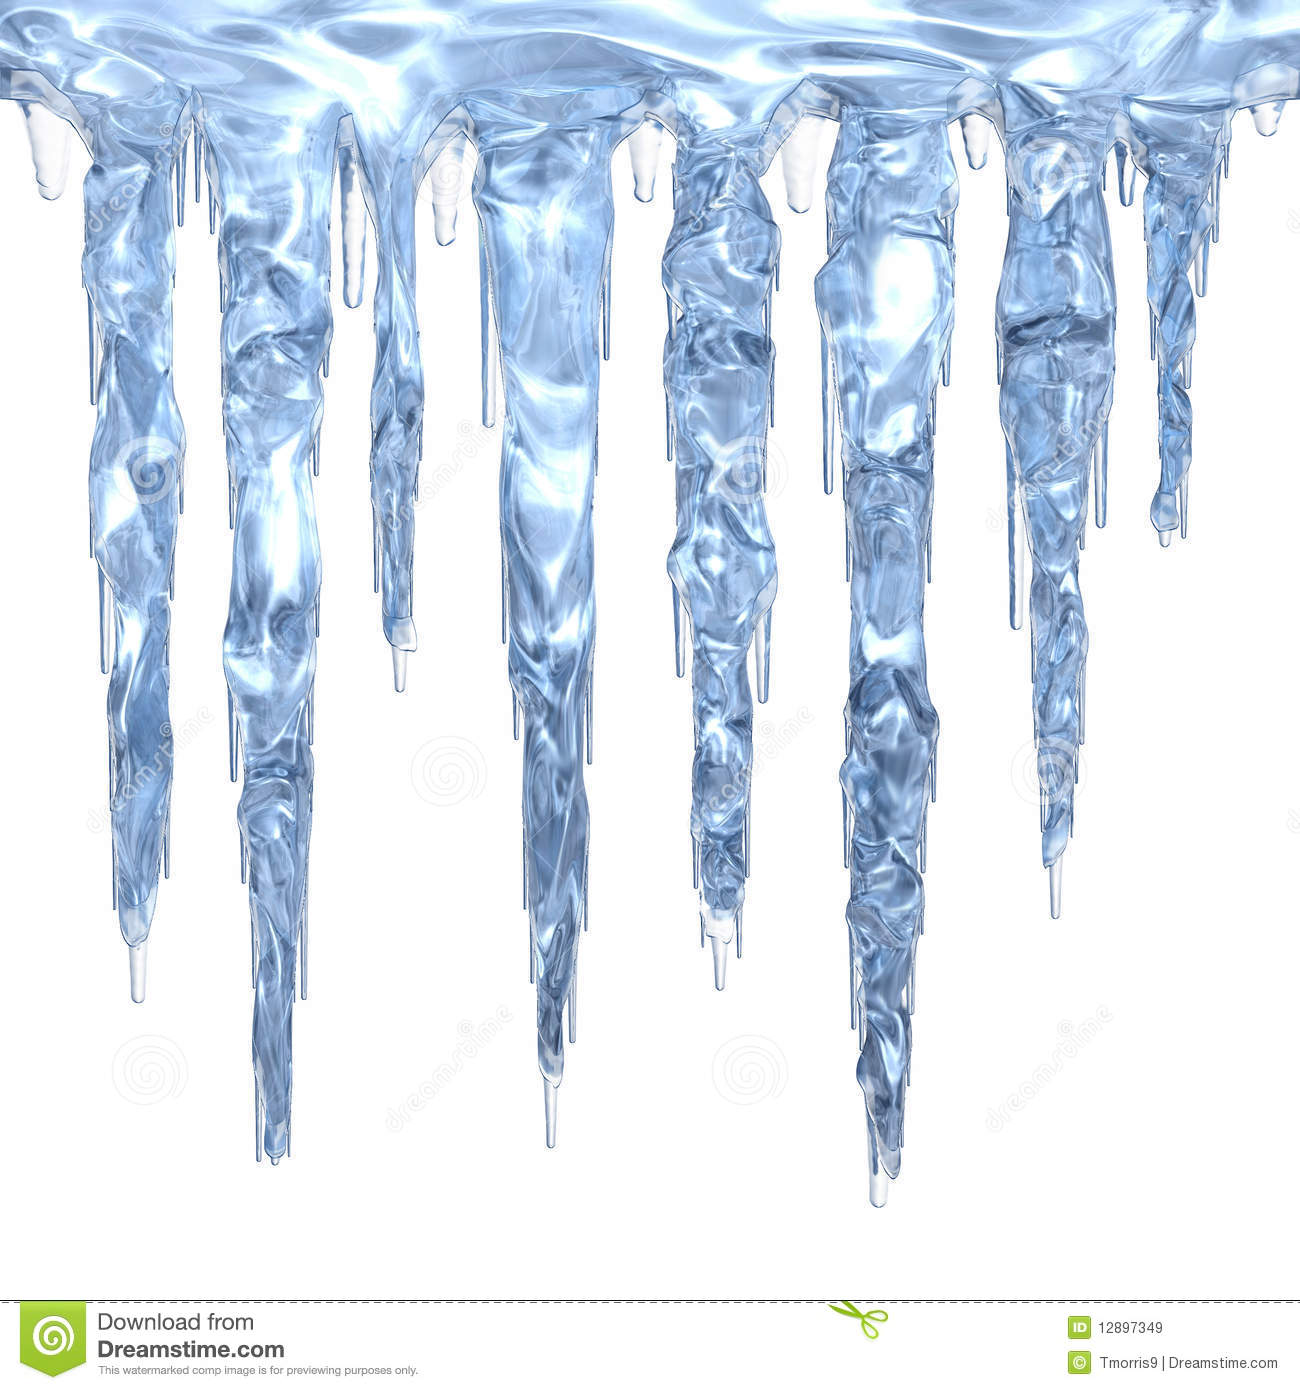 Ice icicles clipart.